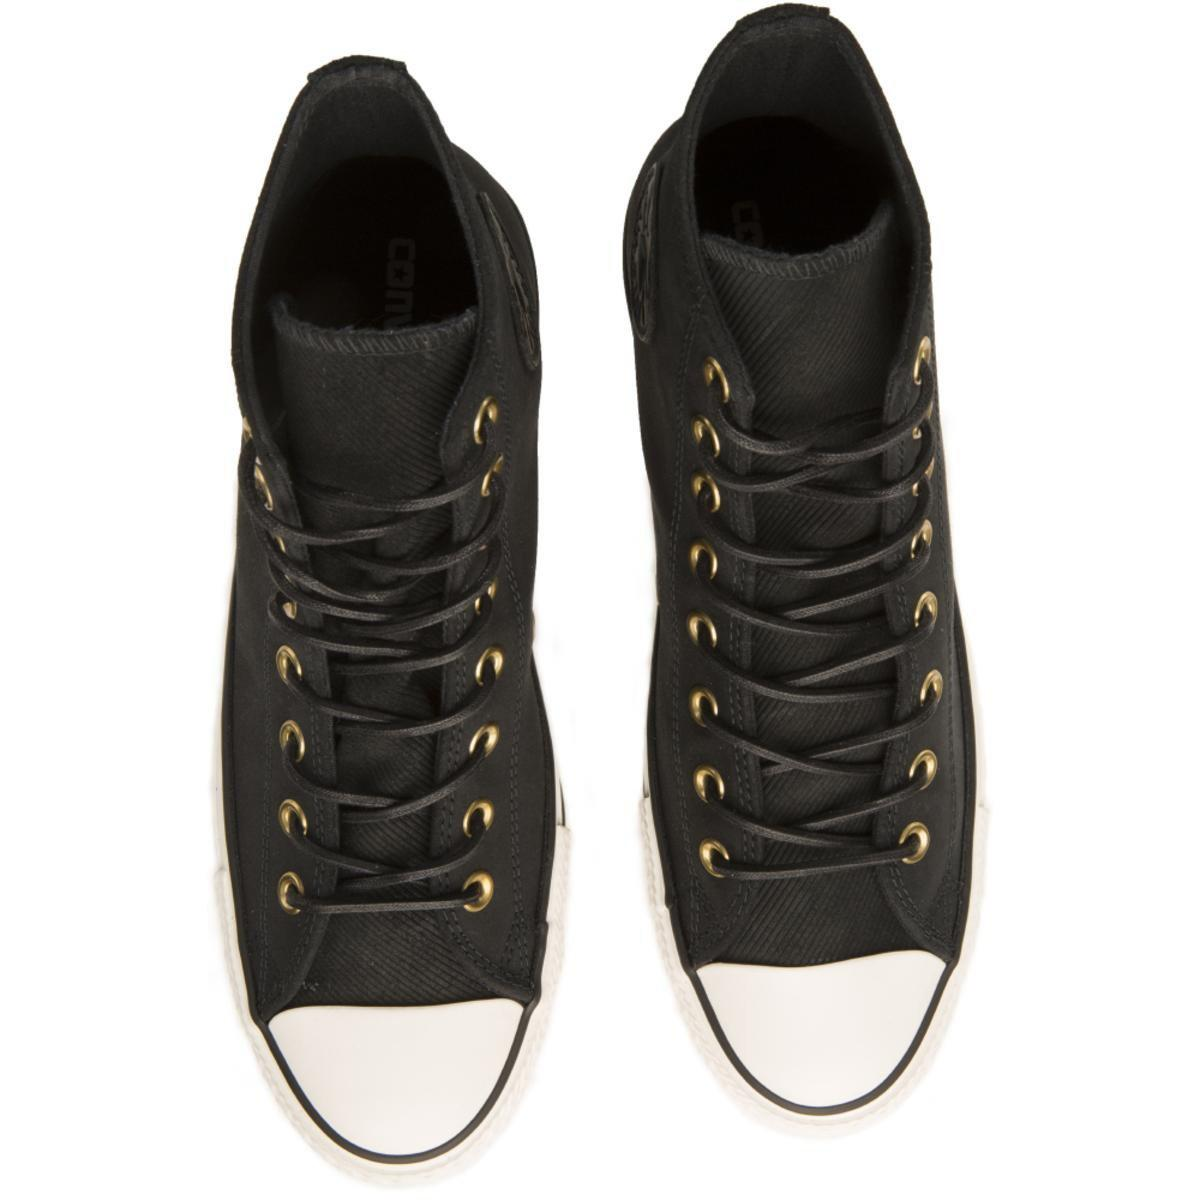 7658e9616e0 Converse - Chuck Taylor All Star Crafted Black Suede High Tops for Men -  Lyst. View fullscreen